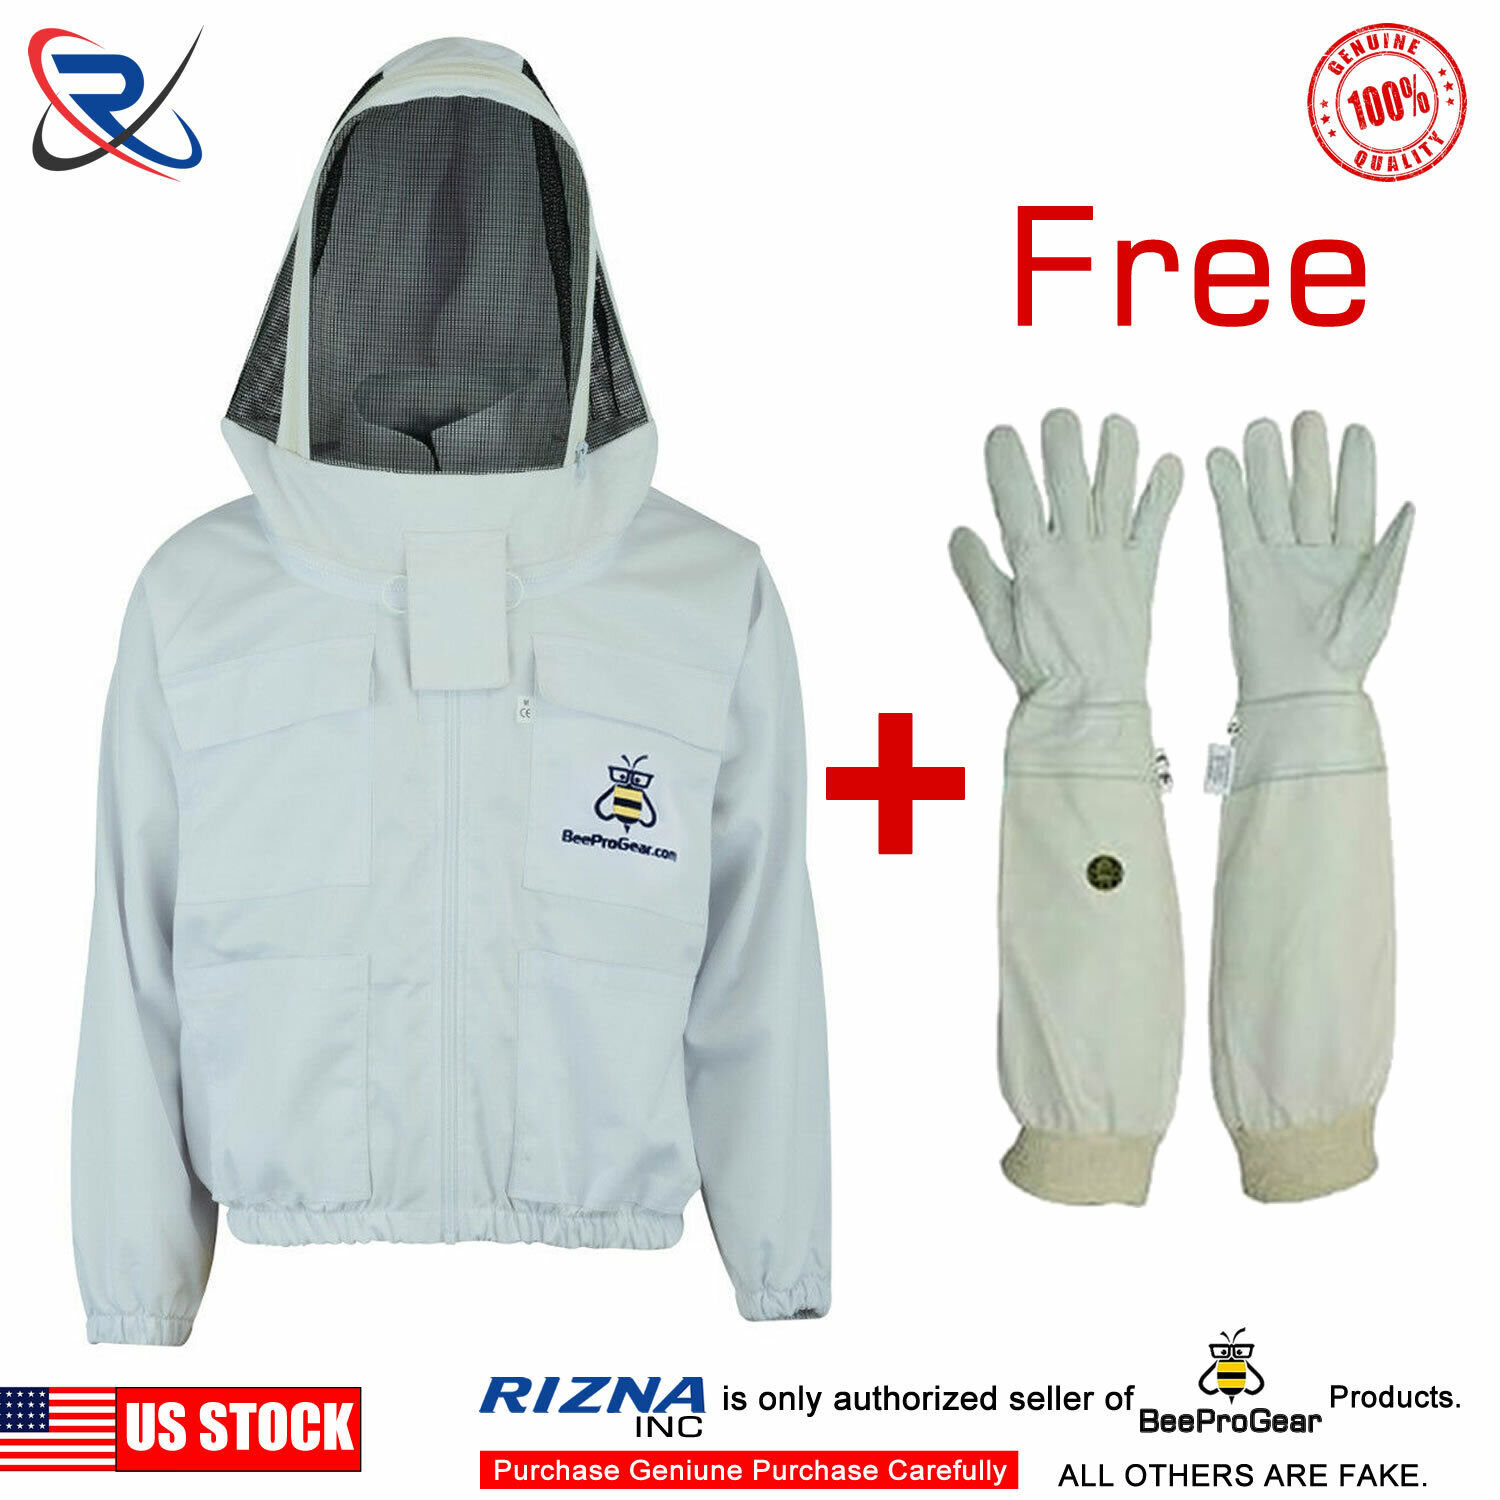 Forest Beekeeping Supply Premium Cotton Jacket with Fencing Veil Hood 2XL Professional Premium Beekeeper Jackets